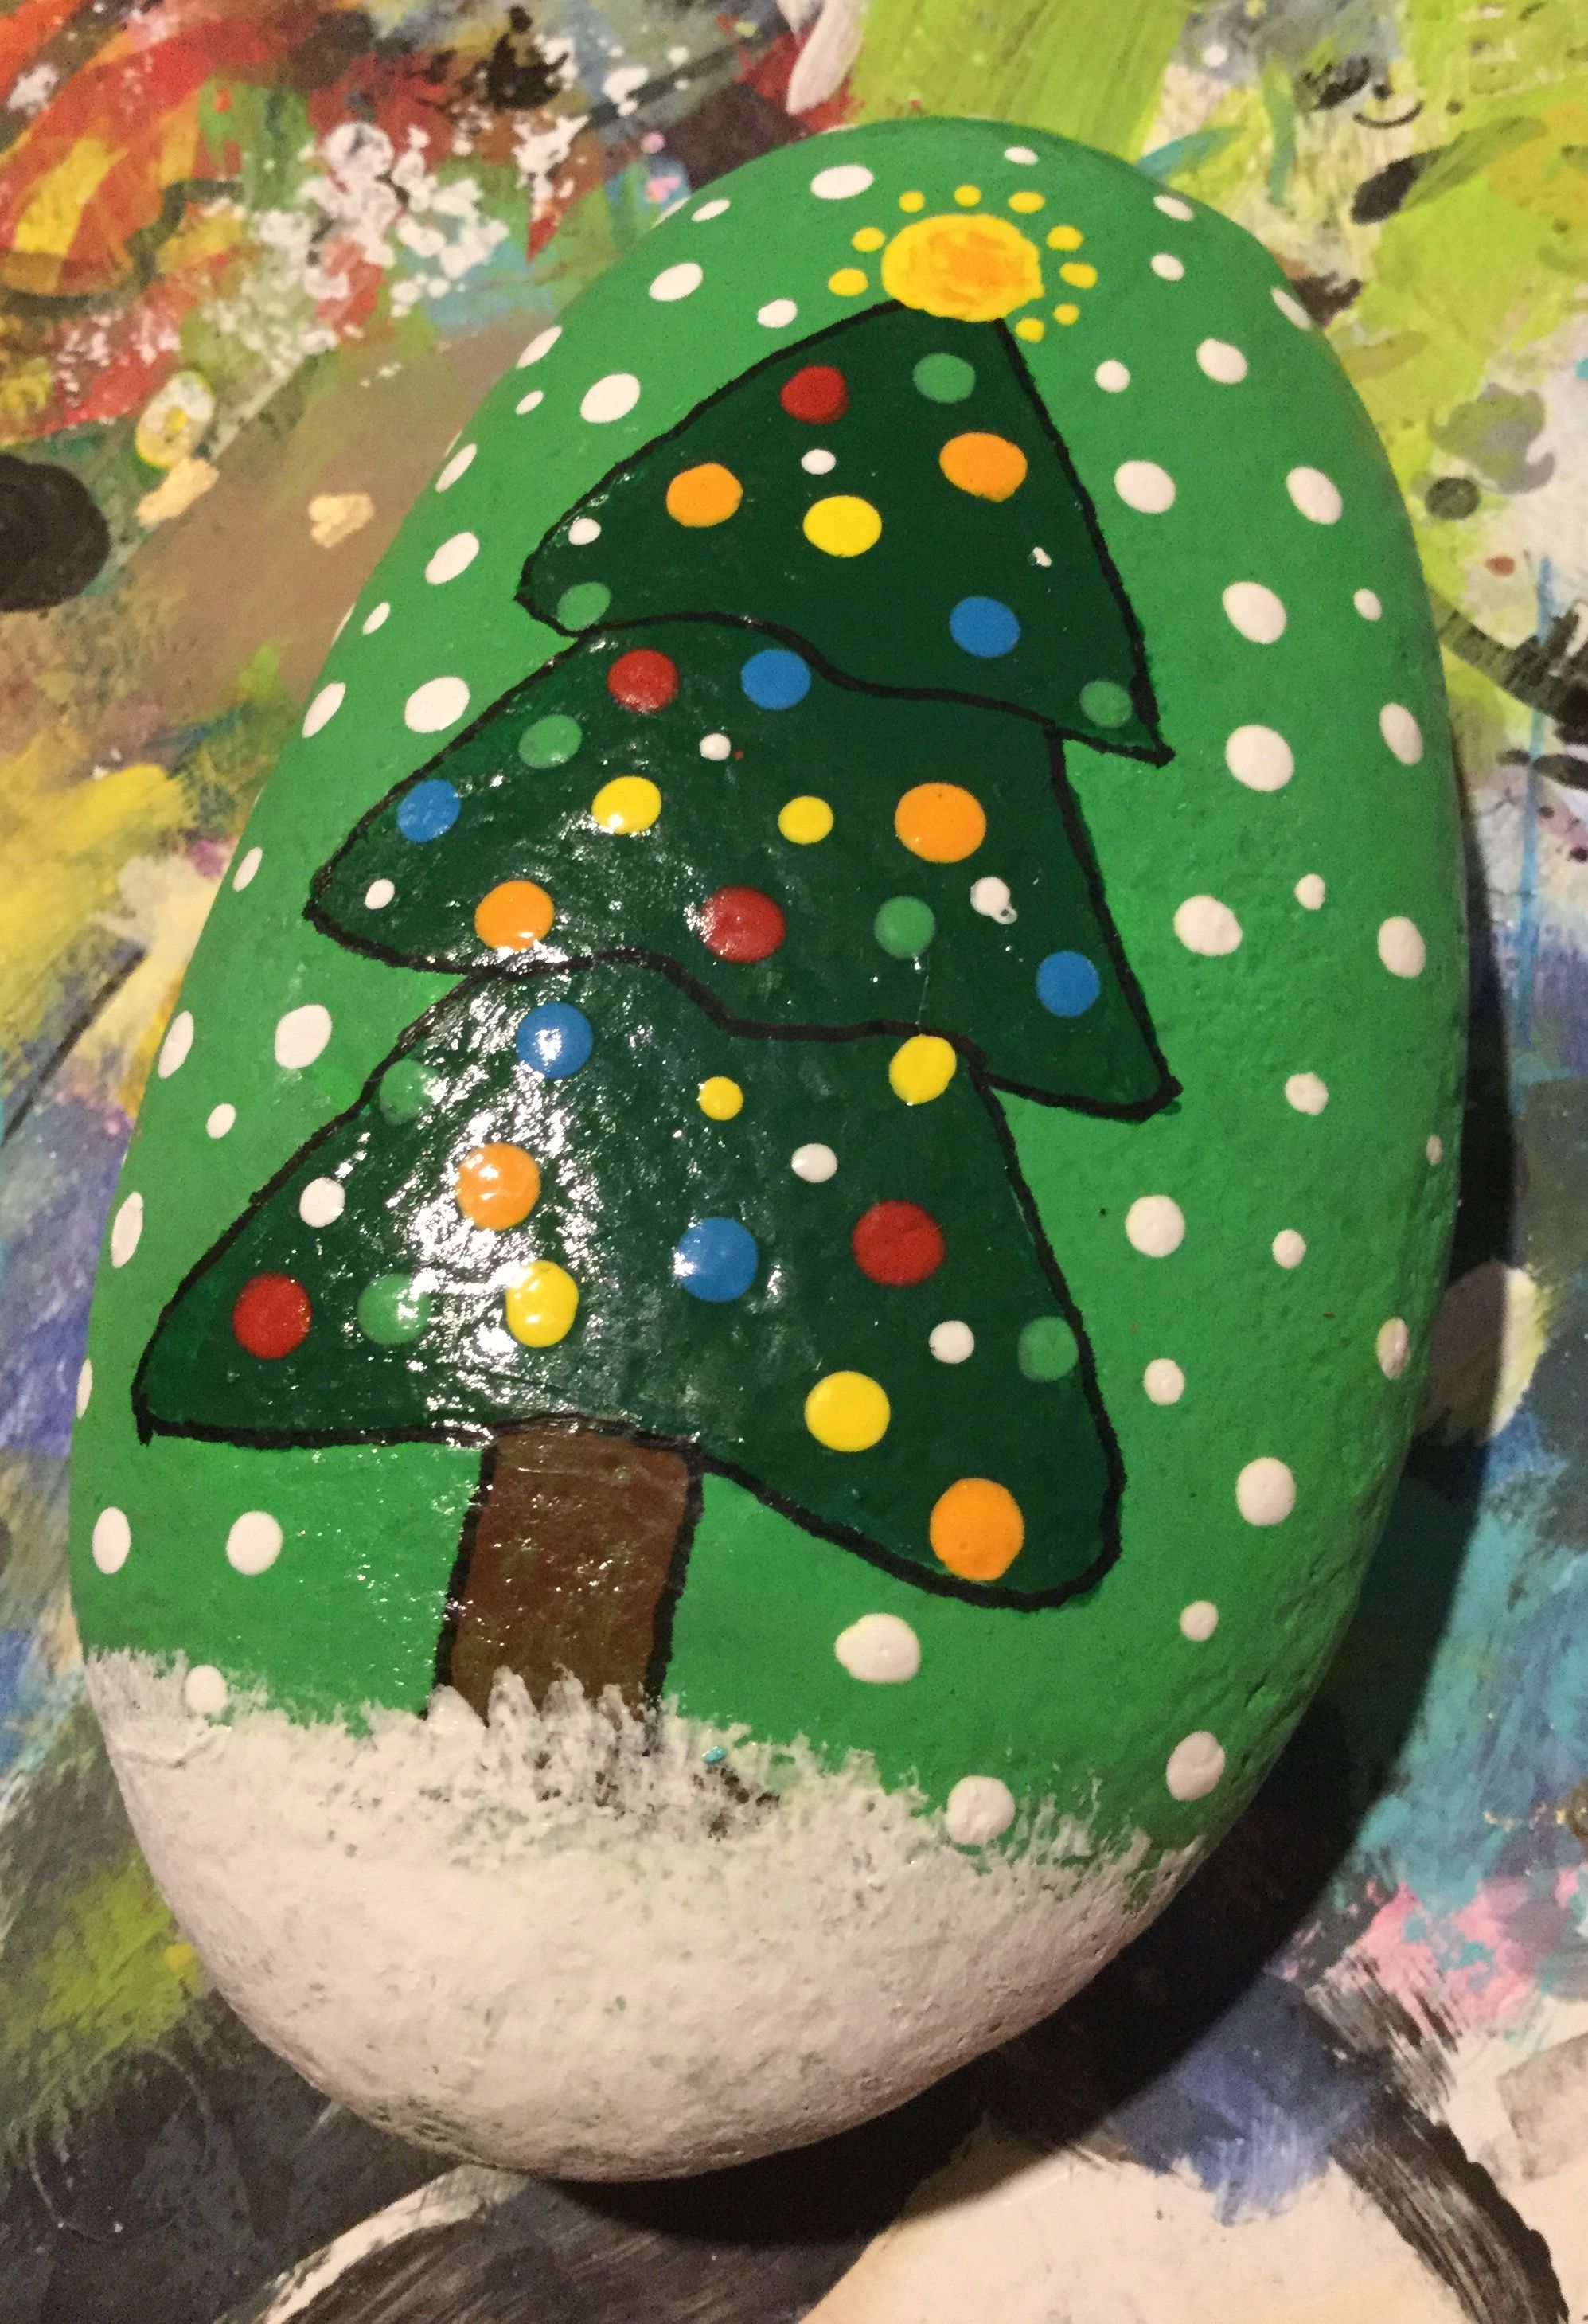 Chicken Soup For The Soul The Magic Of Mothers Daughters 101 Inspirational And Entertaining Stories About That Special Bond By Jack Canfield Mark Victor Ha Christmas Tree Painting Rock Painting